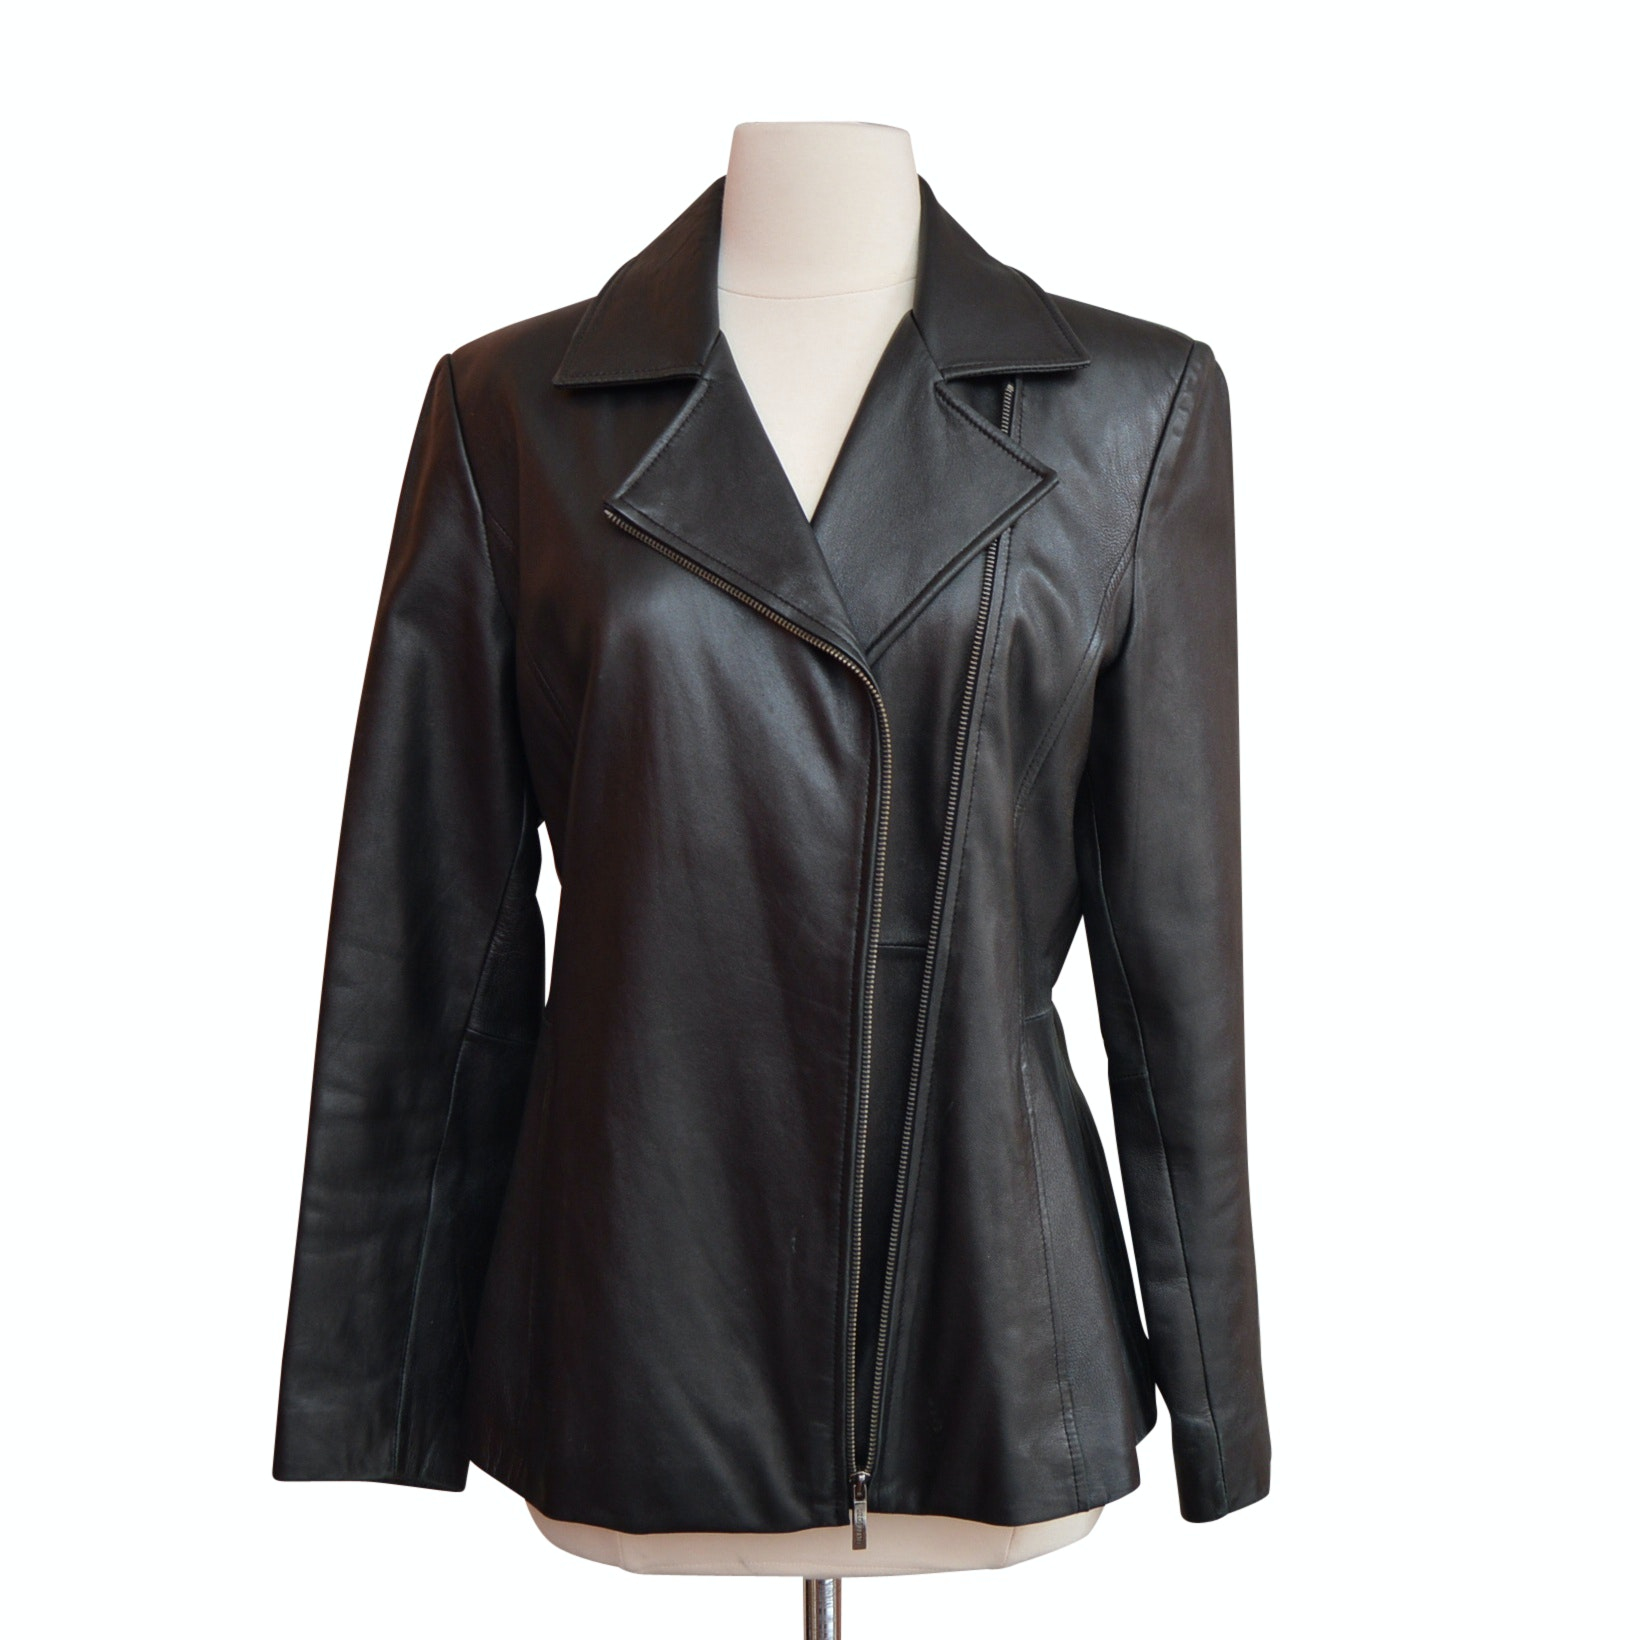 Liz Claiborne Black Leather Jacket